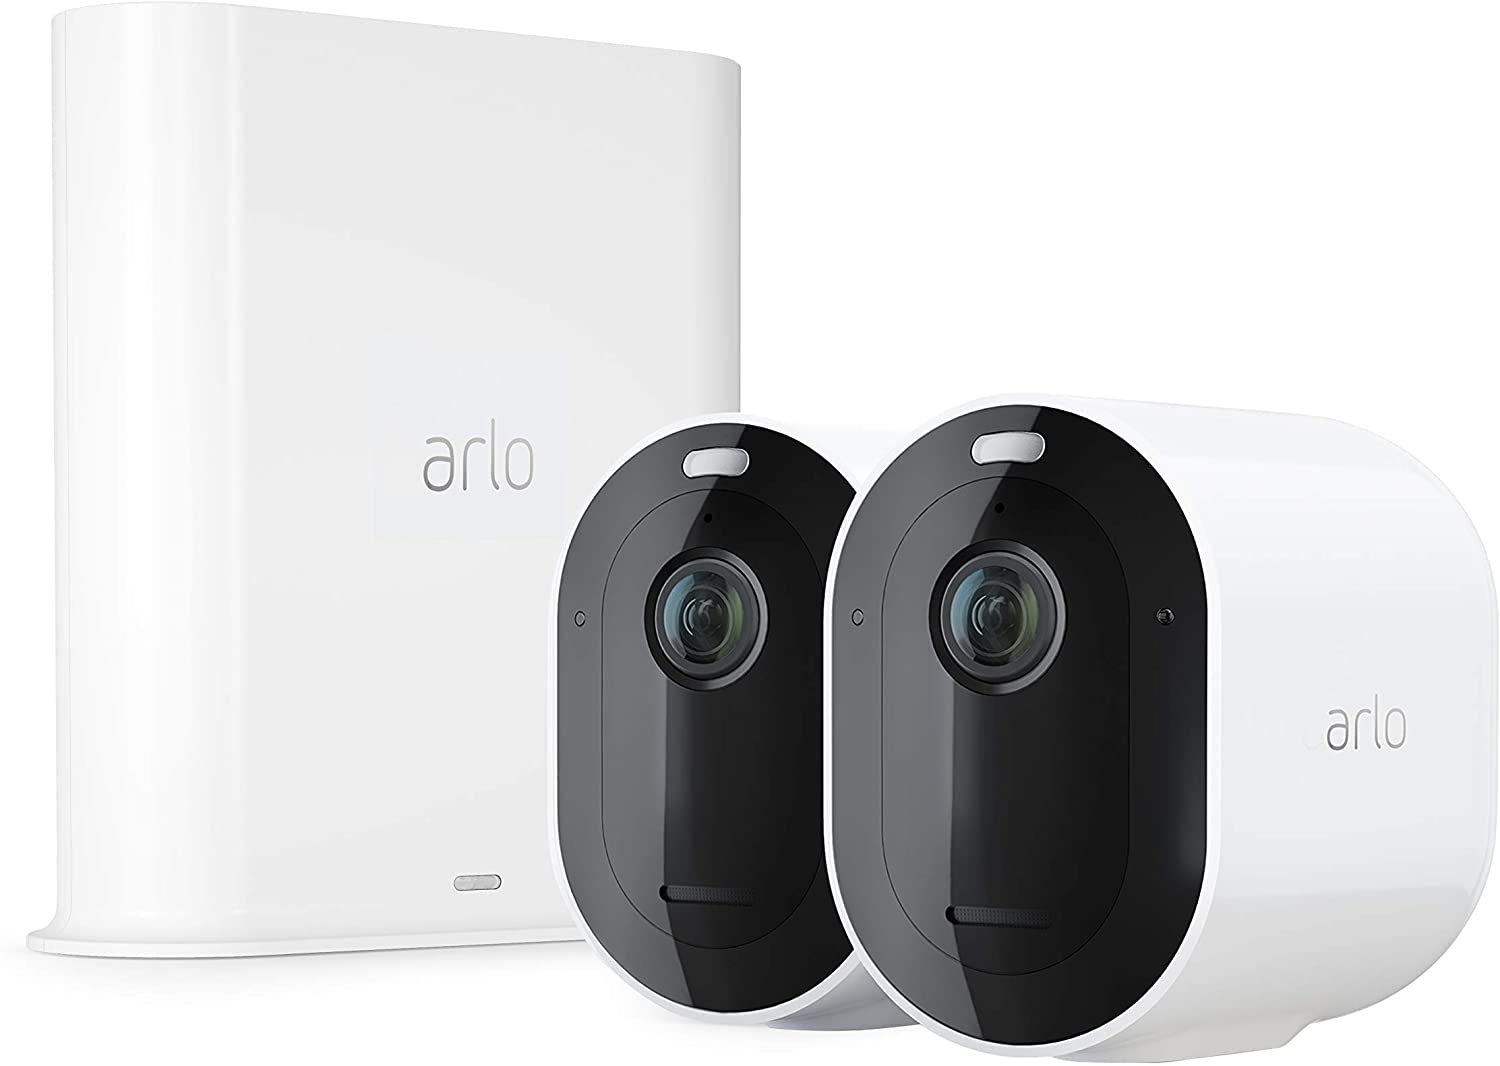 Arlo Pro 3 – Wire-Free Security 2 Camera System | 2K with HDR, Indoor/Outdoor, Color Night Vision, Spotlight, 160° View, 2-Way Audio, Siren | Works with Alexa | (VMS4240P)